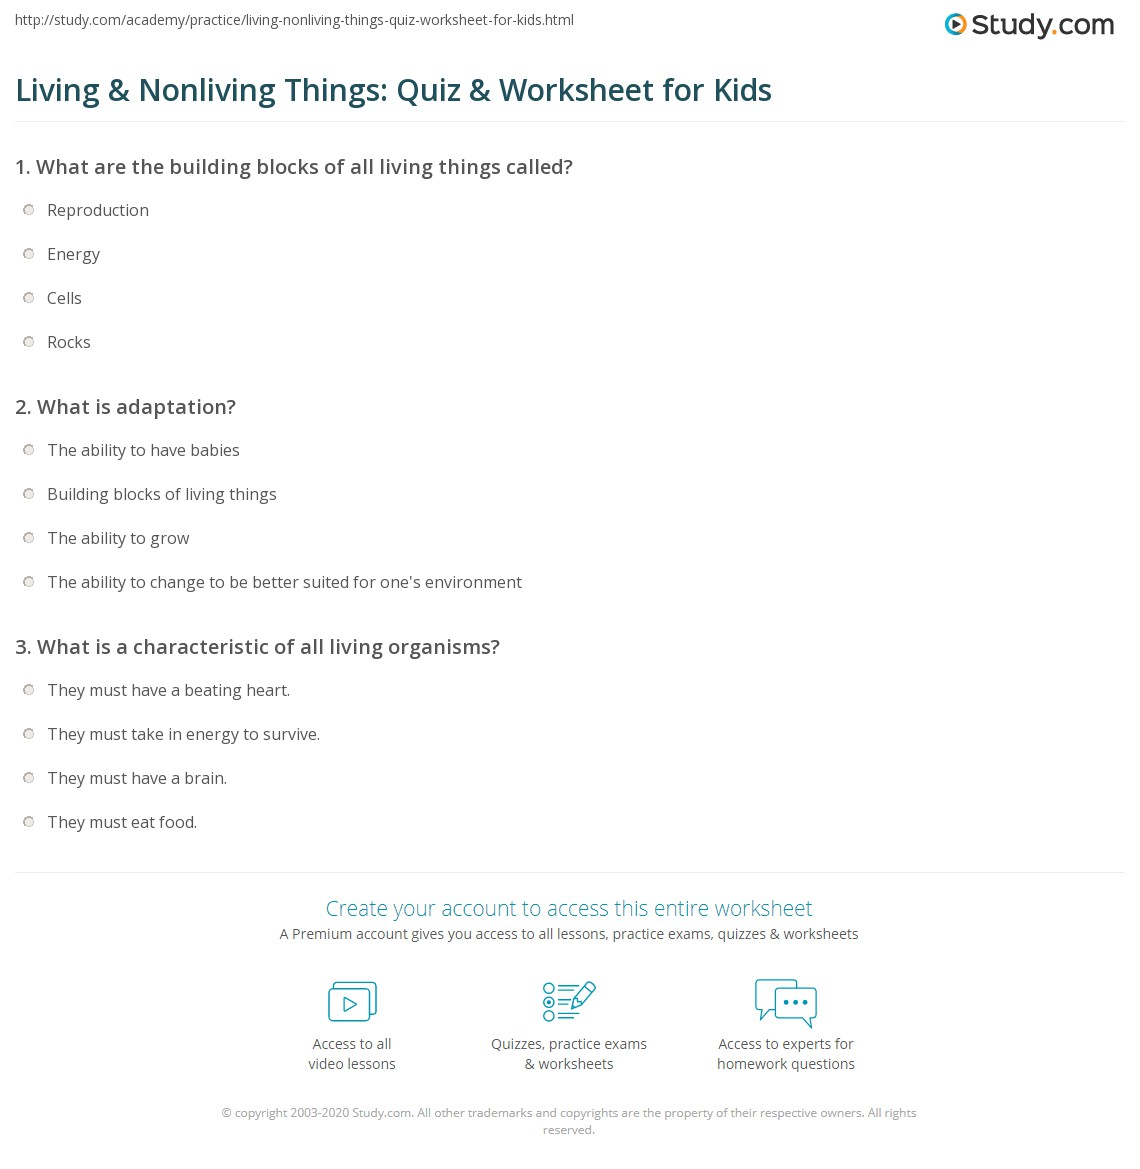 Living & Nonliving Things: Quiz & Worksheet for Kids  Study.com multiplication, learning, alphabet worksheets, free worksheets, and worksheets Classifying Living And Nonliving Things Worksheet 2 1382 x 1140